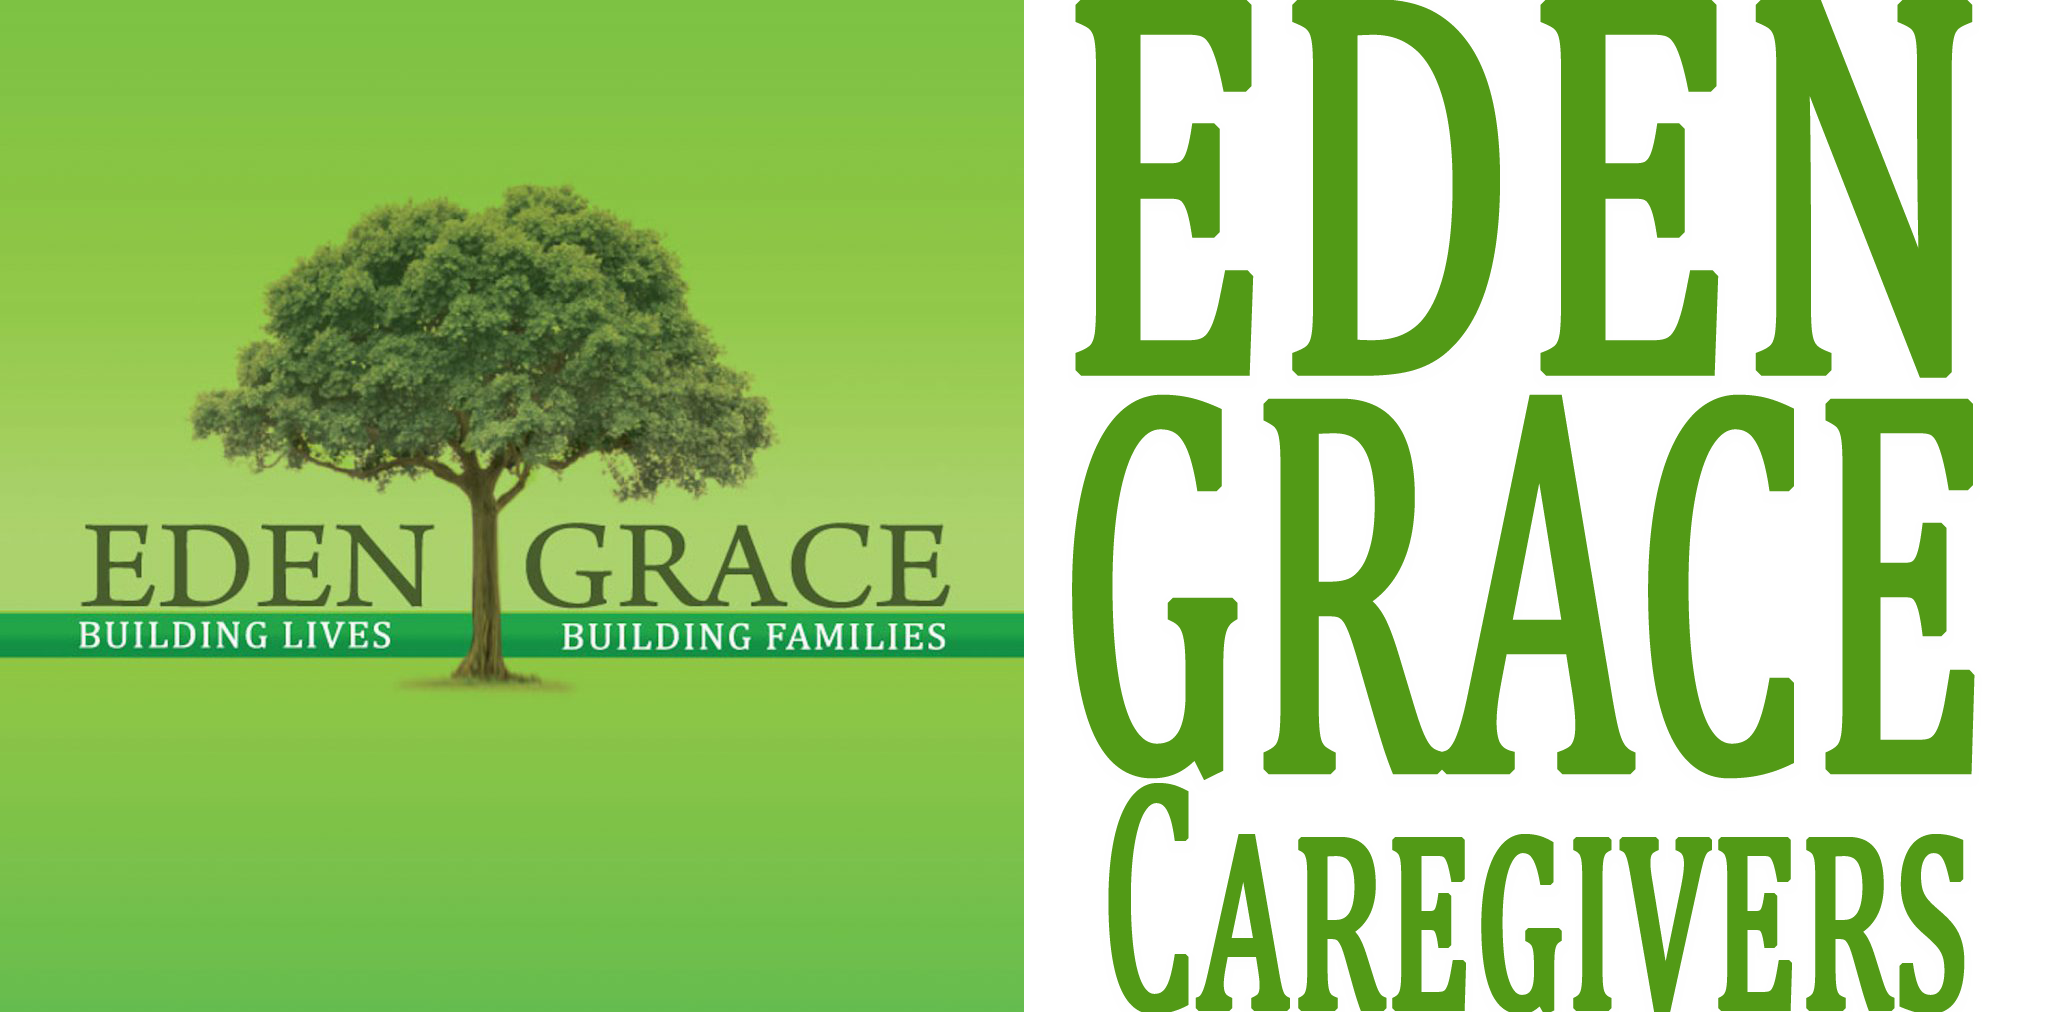 Eden Grace Caregiver Agency